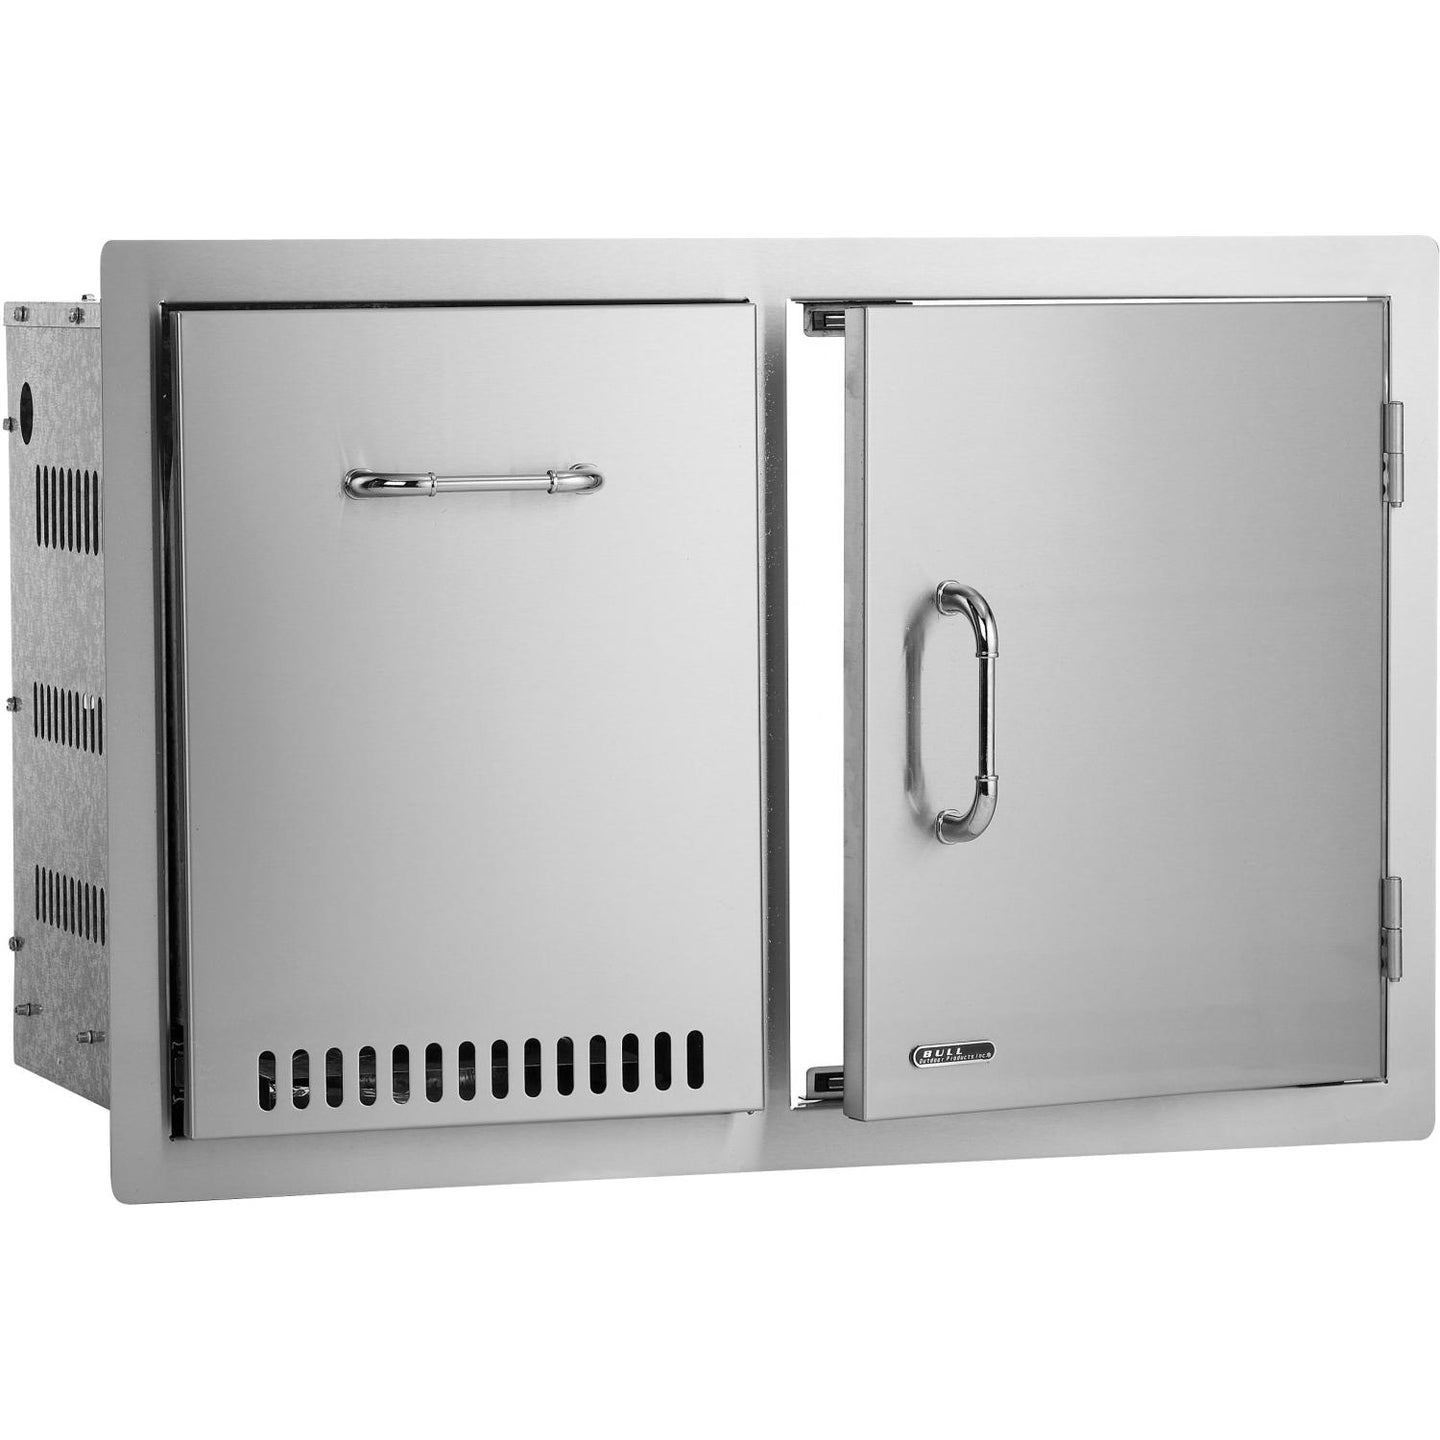 Bull 32-Stainless Steel Access Door & Propane Drawer Combo - 65784